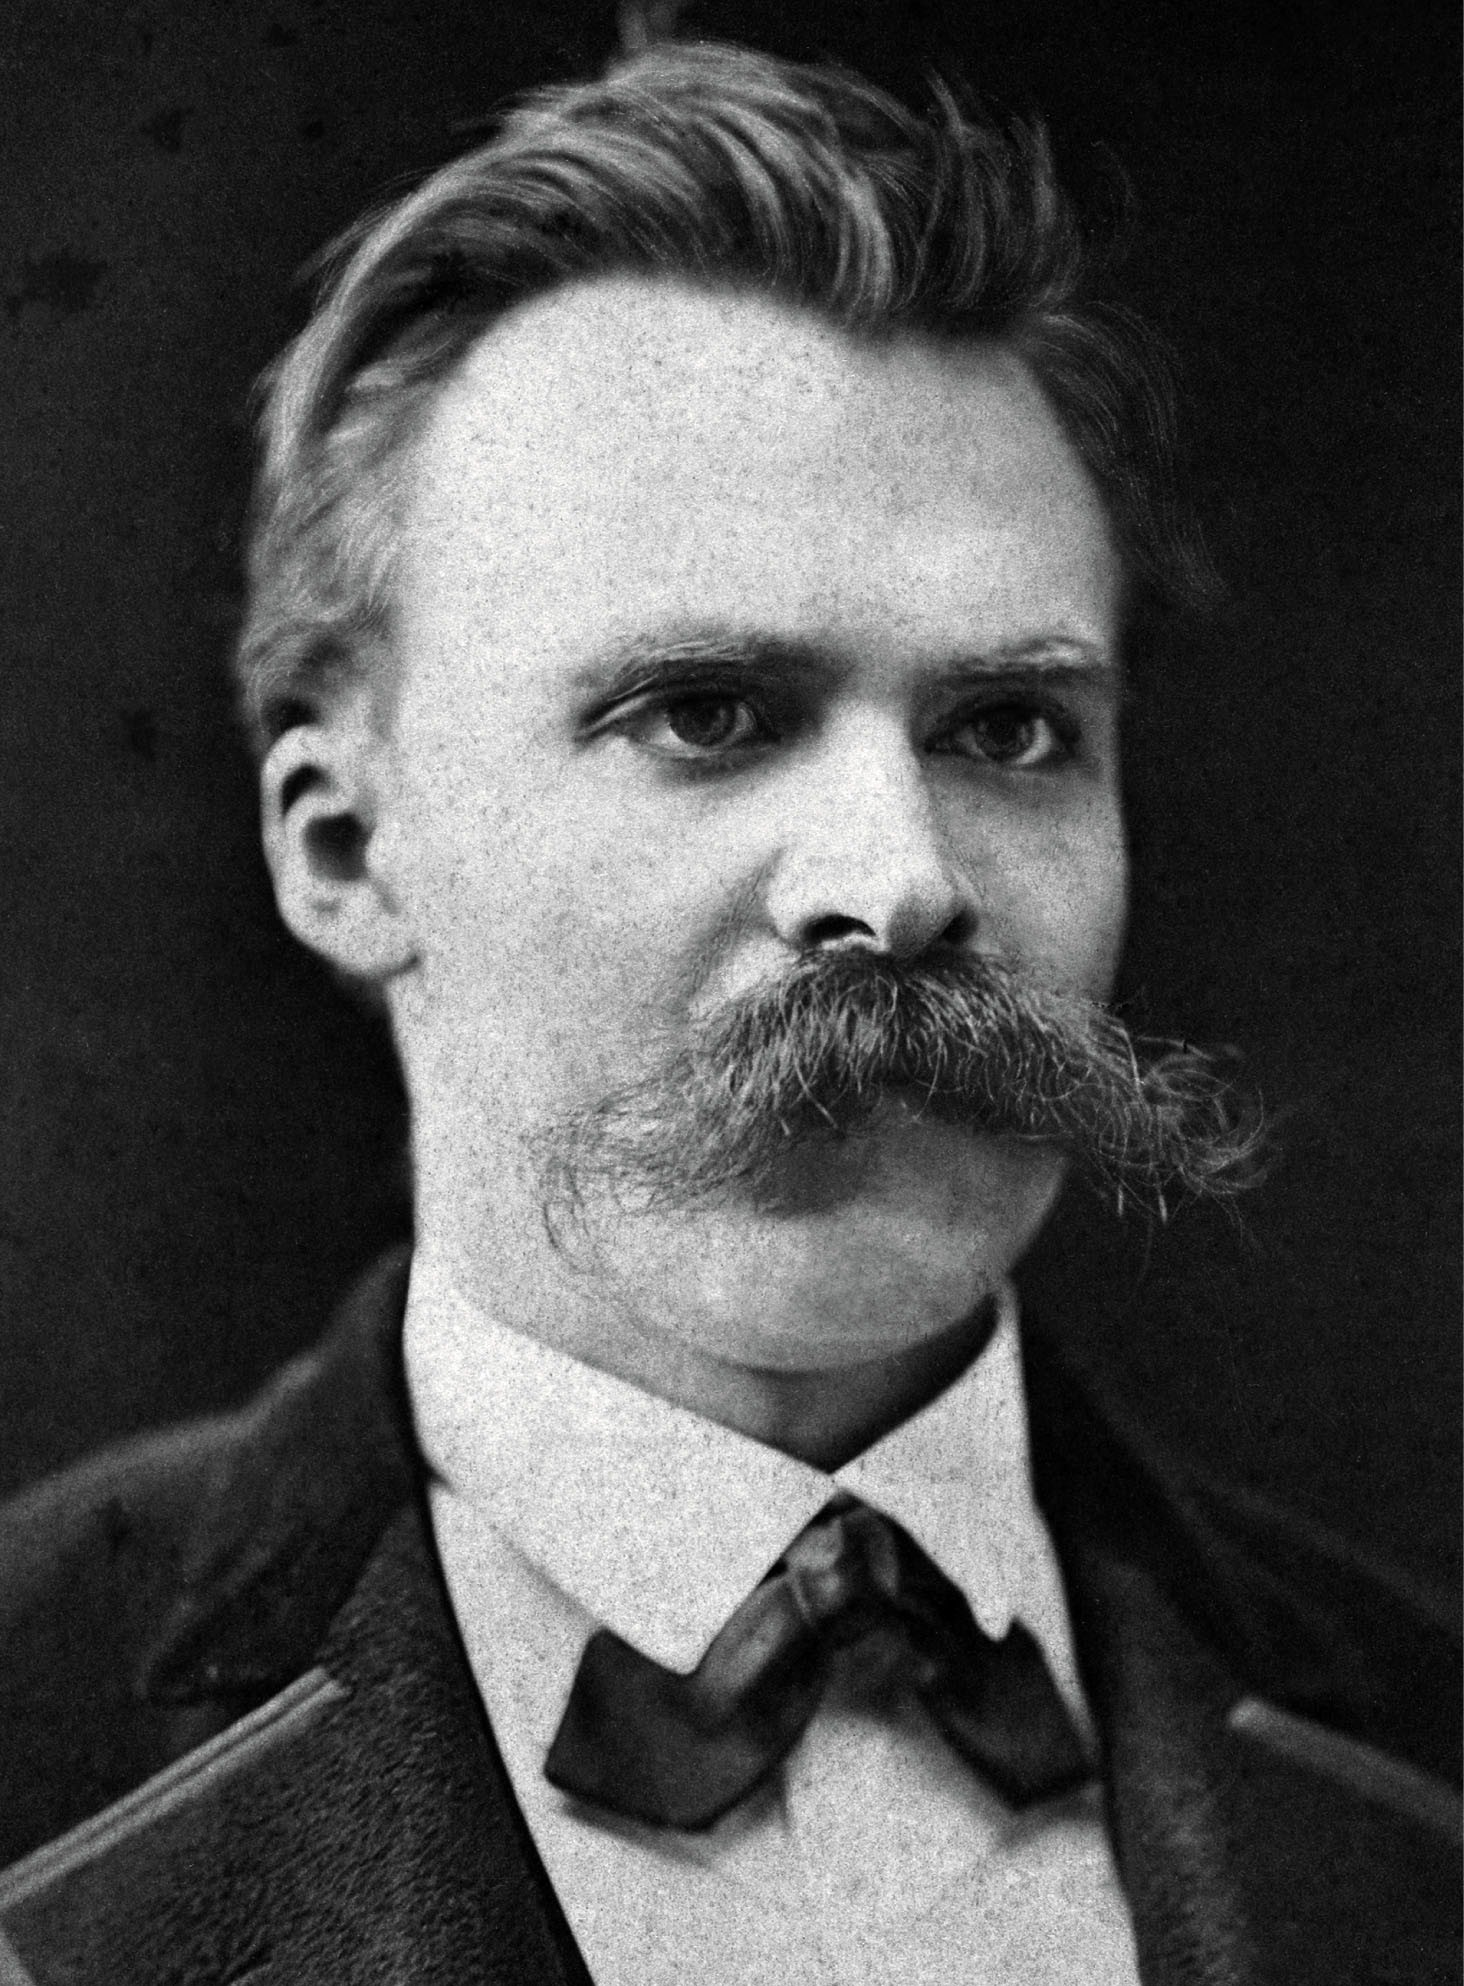 "Spirituality Science - Beyond Good and Evil: Friedrich Wilhelm Nietzsche(1844-1900), German philosopher introduced the concept of ""Life as Will to Power."" He explained his Moral Philosophy in his books, 'Beyond Good and Evil : Prelude to a Philosophy of the Future'(1886), and 'On the Genealogy of Morals'(1887)."